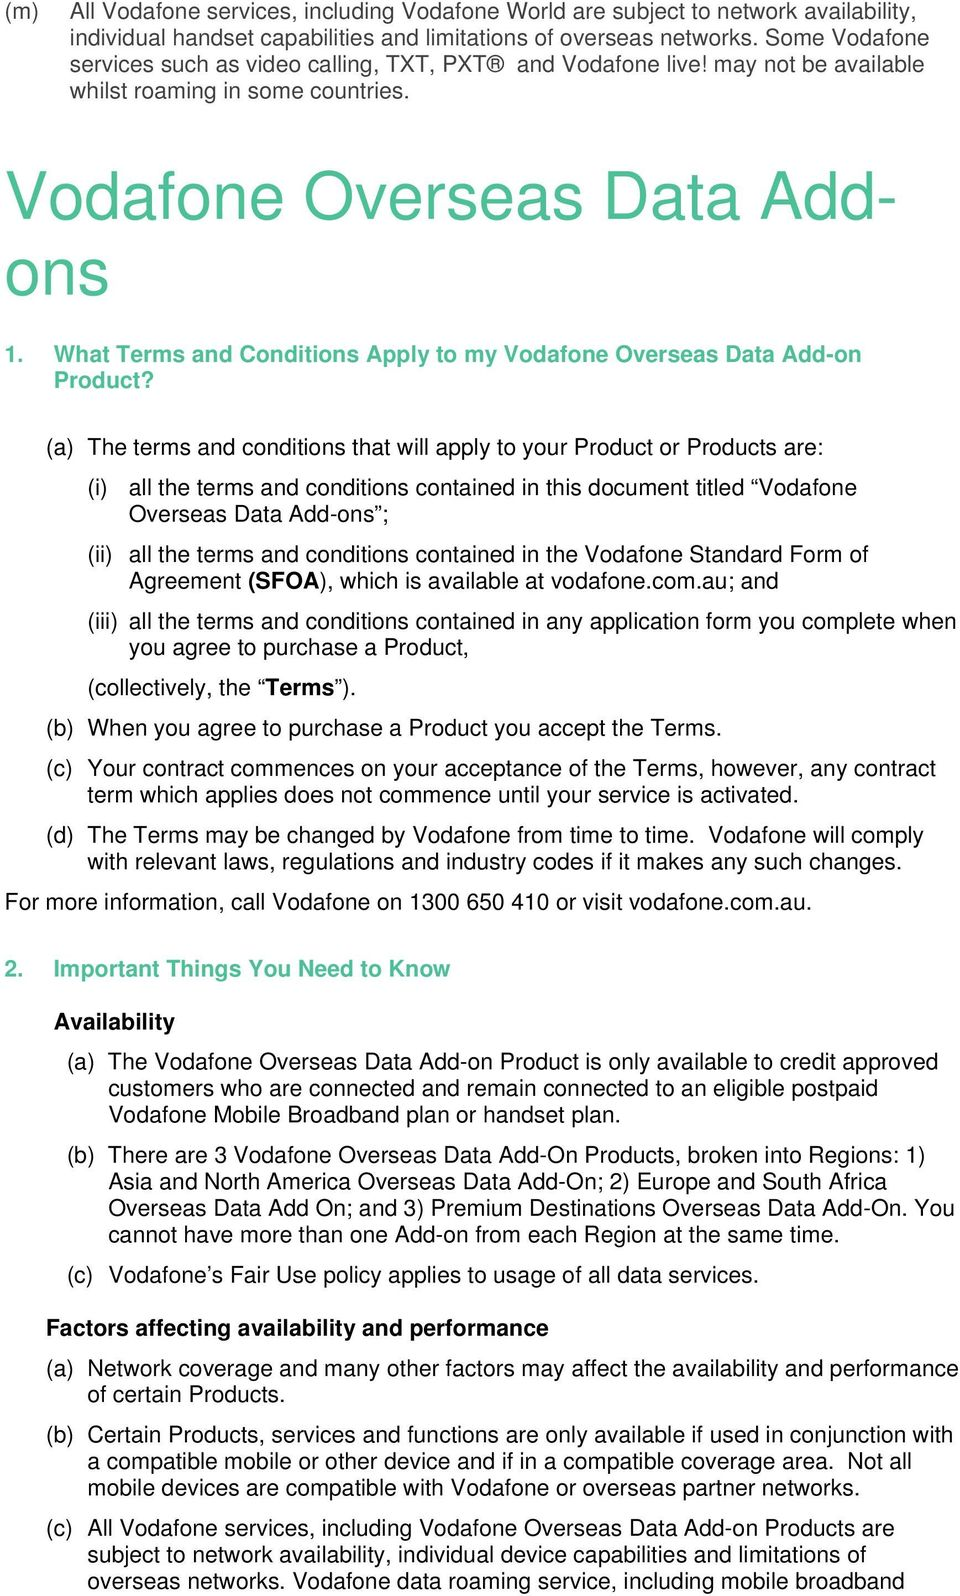 What Terms and Conditions Apply to my Vodafone Overseas Data Add-on Product?